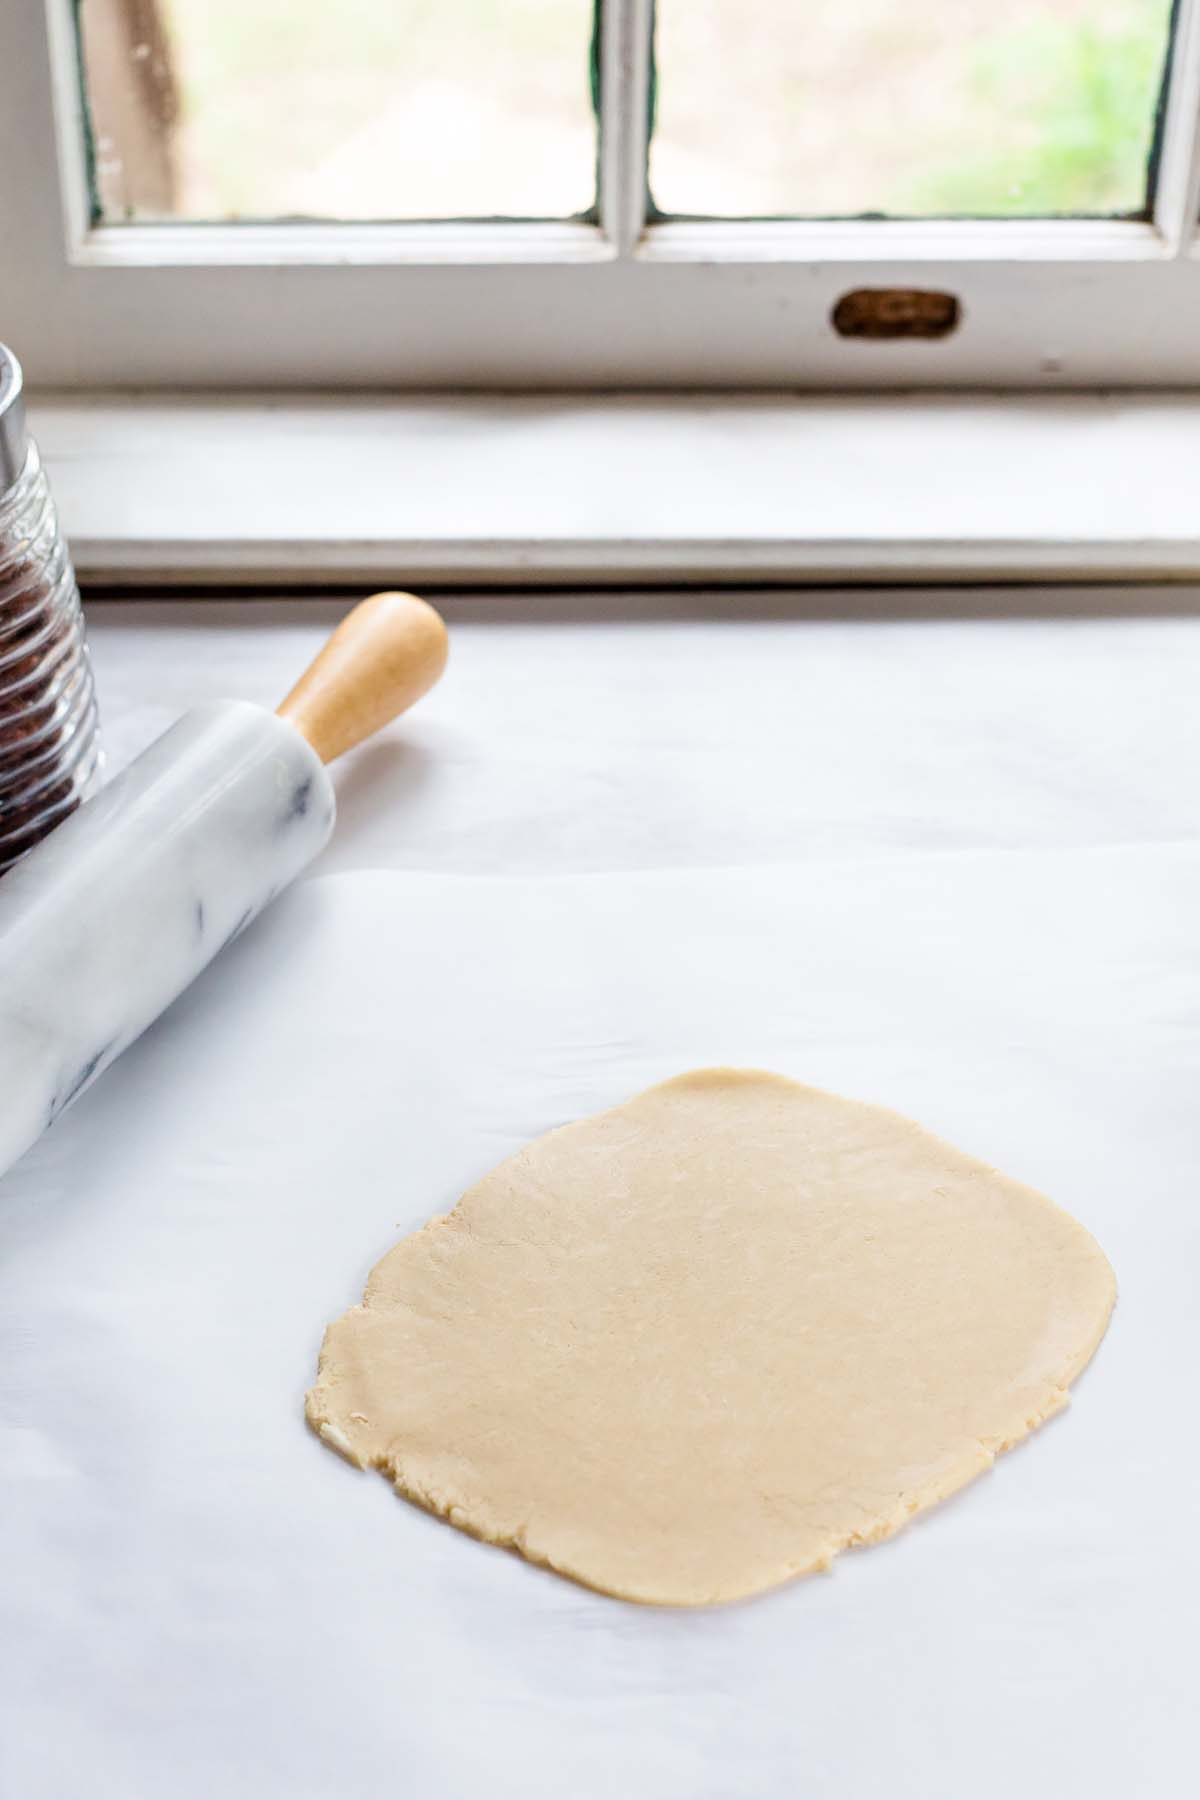 pie dough being rolled out